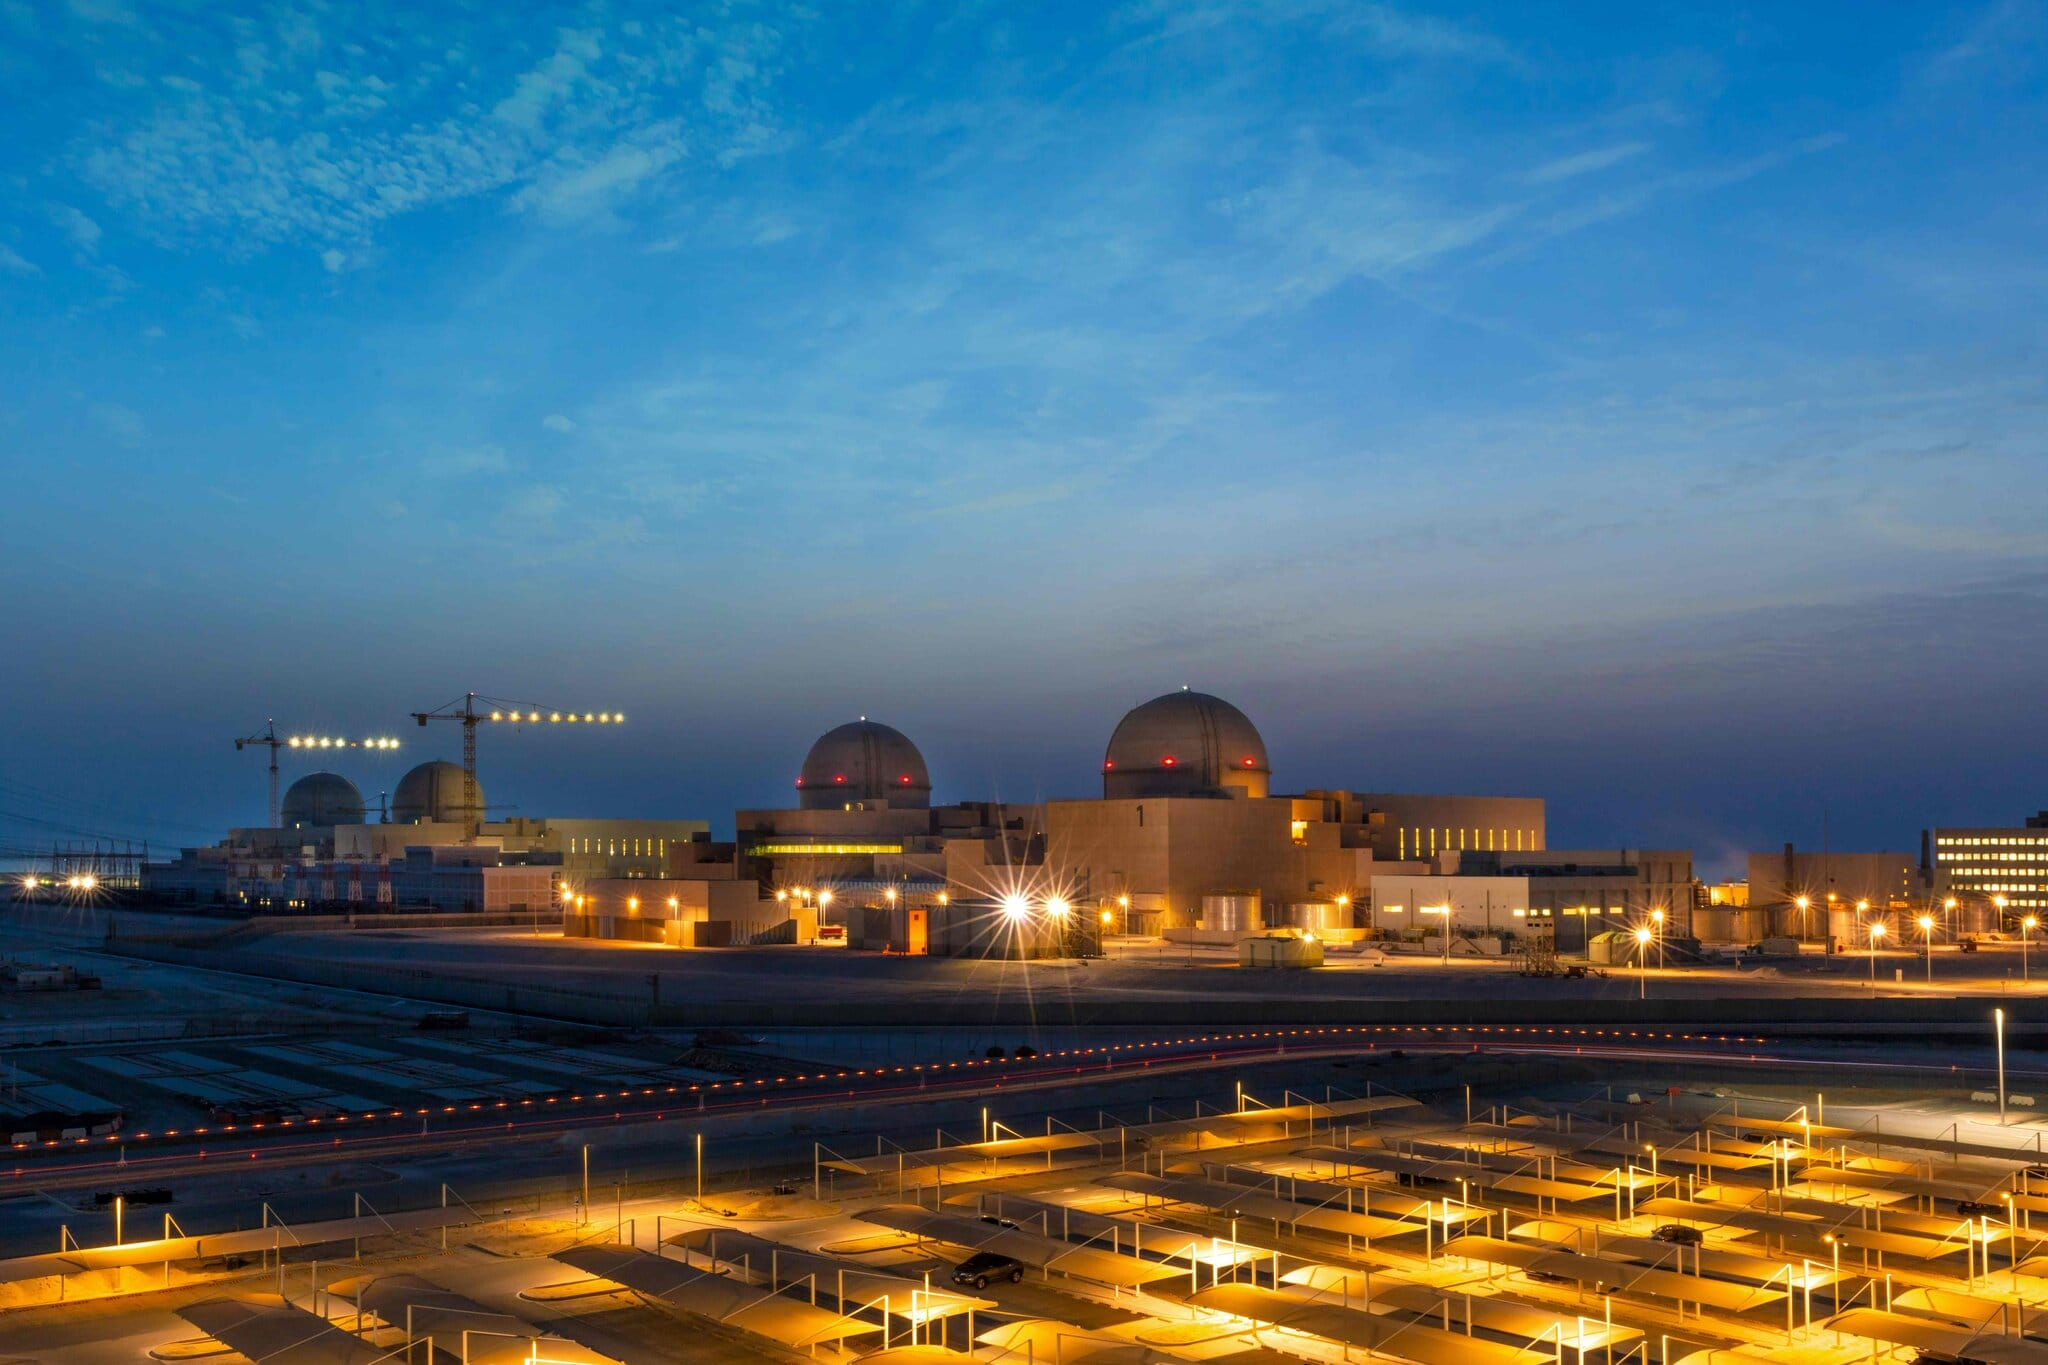 A photo provided by United Arab Emirates government shows the Barakah nuclear power plant.Credit...